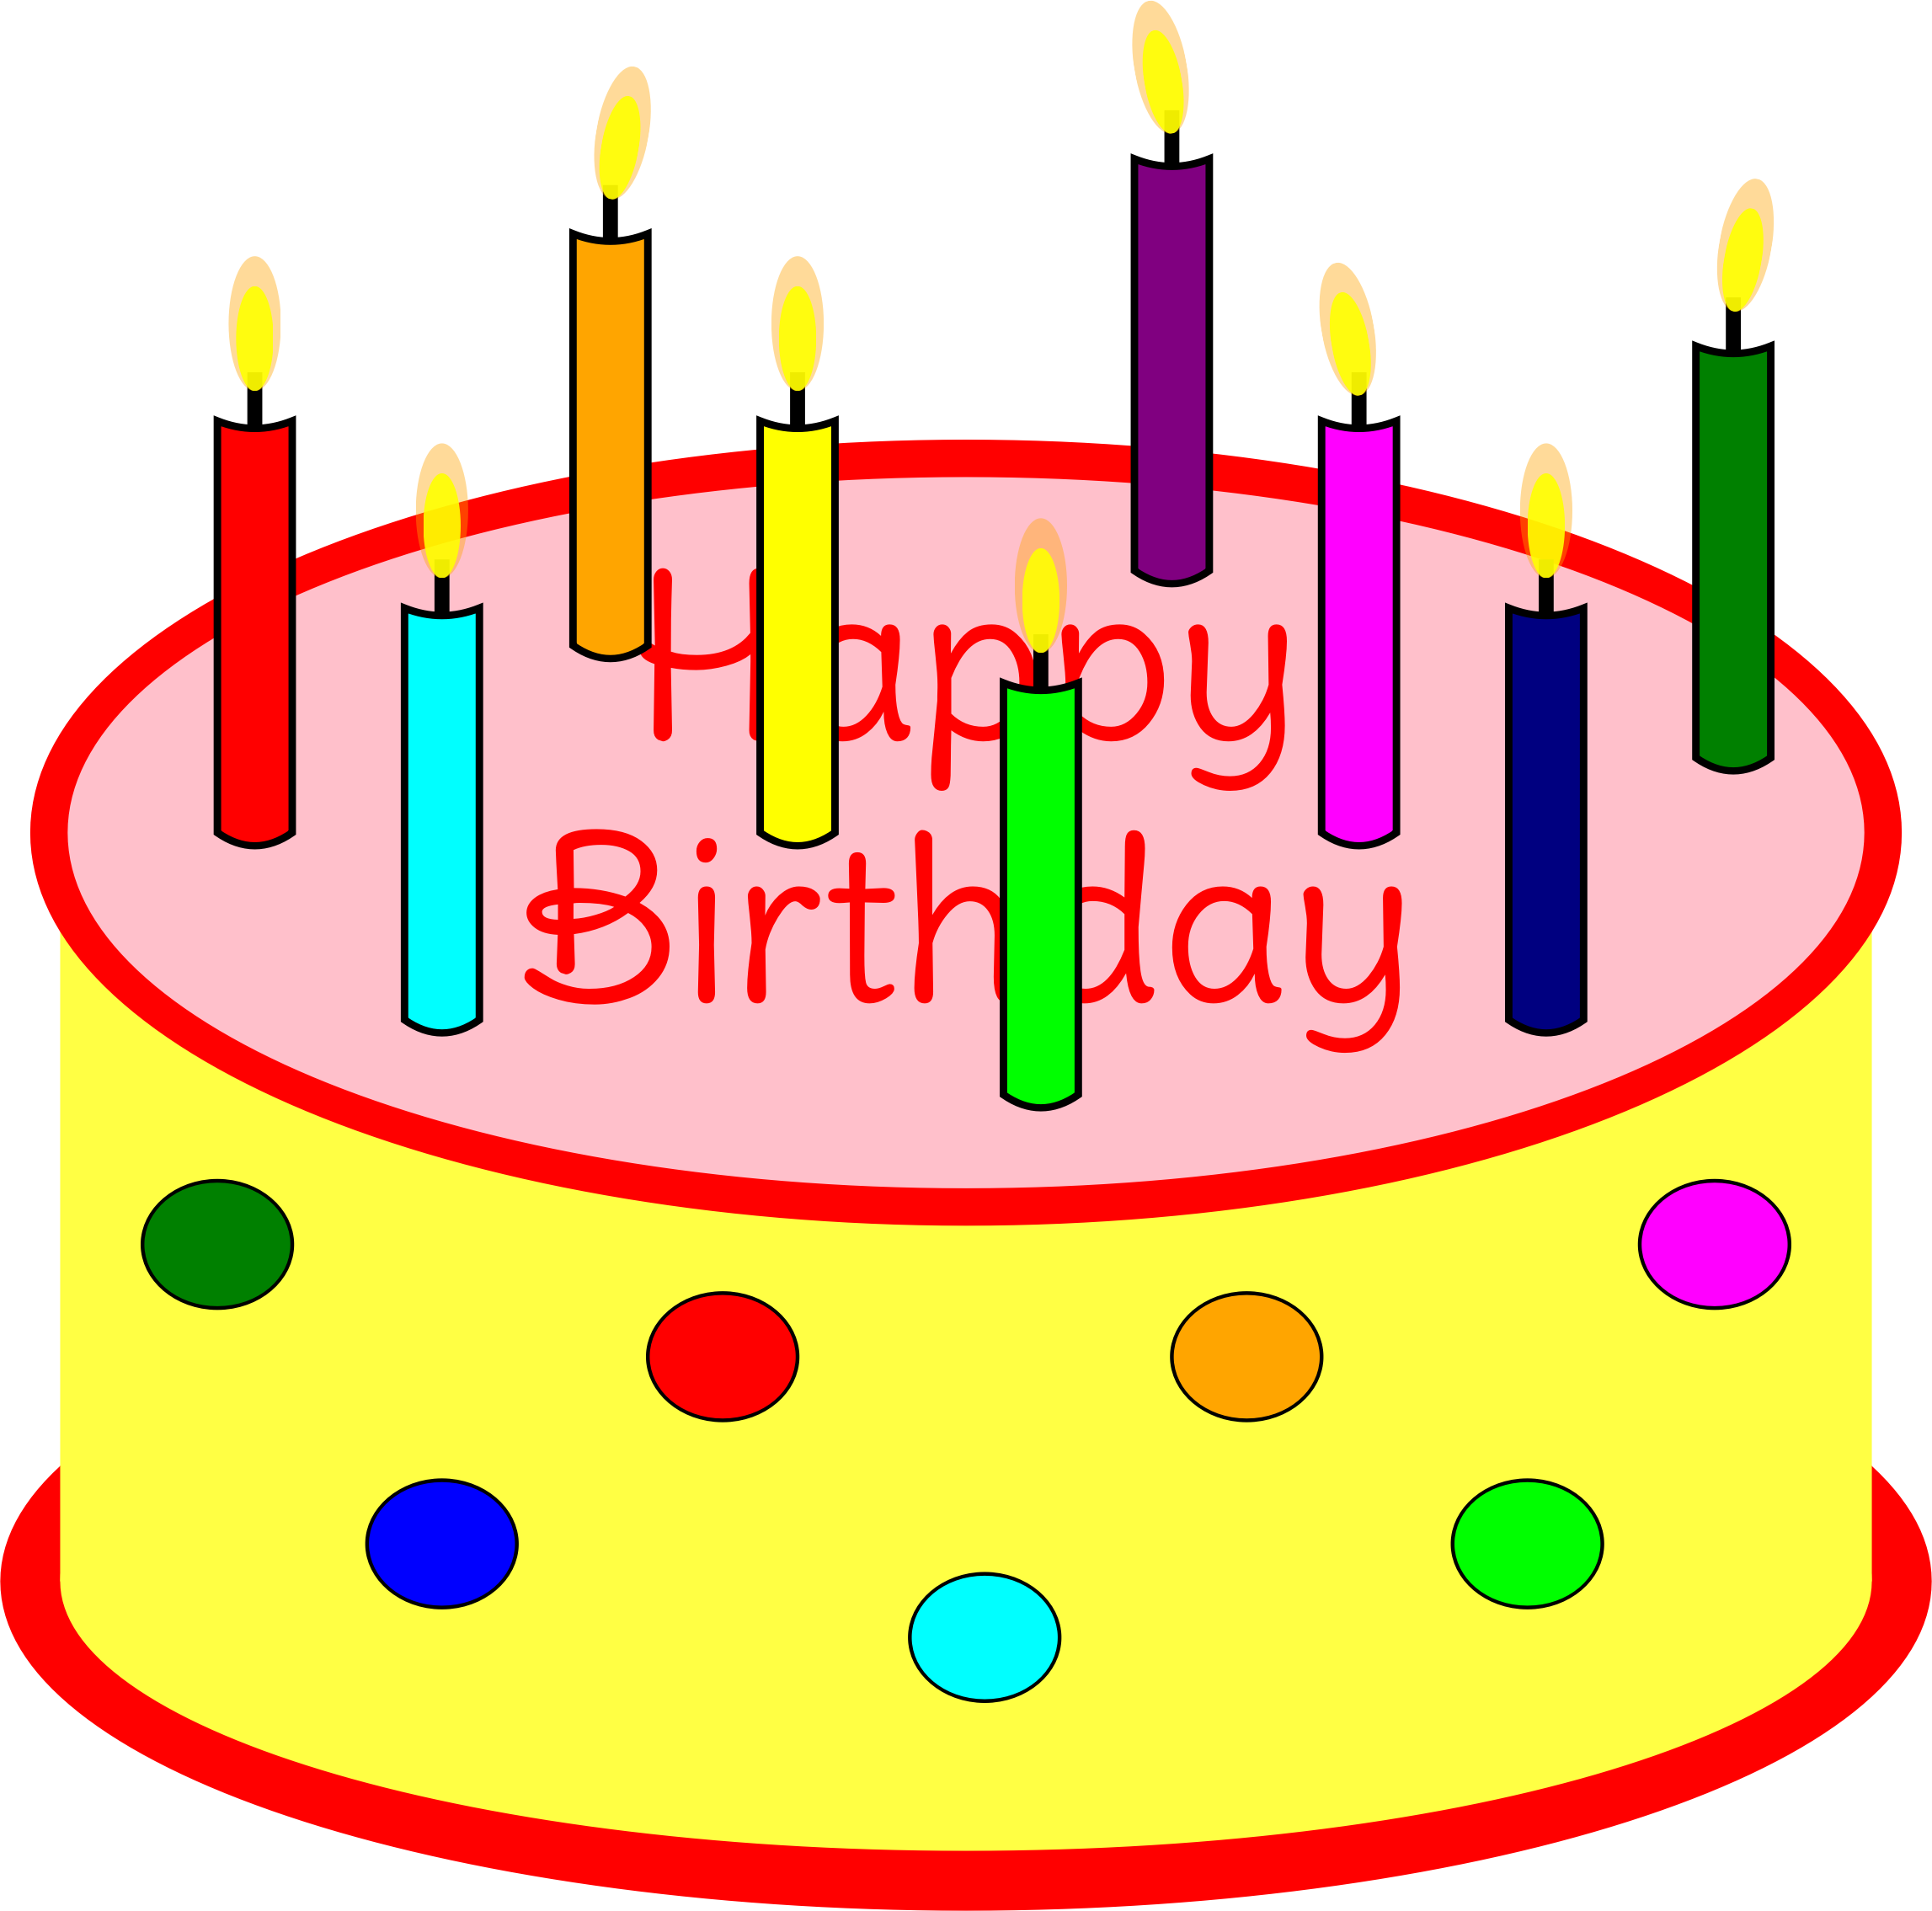 Clipart of birthday cake. Flickering candle